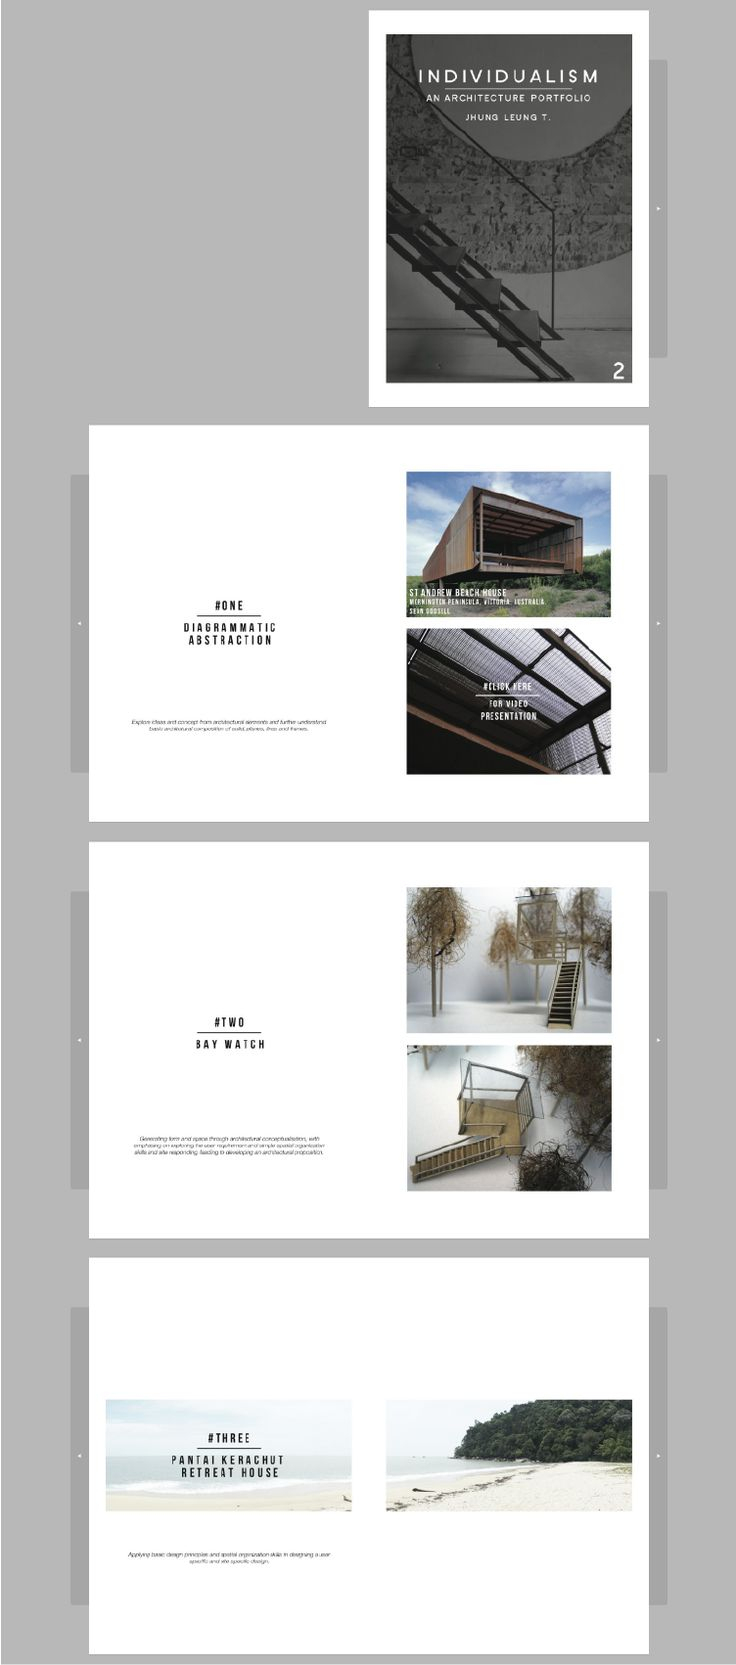 The 25 best architecture portfolio layout trending ideas for Architectural design sample